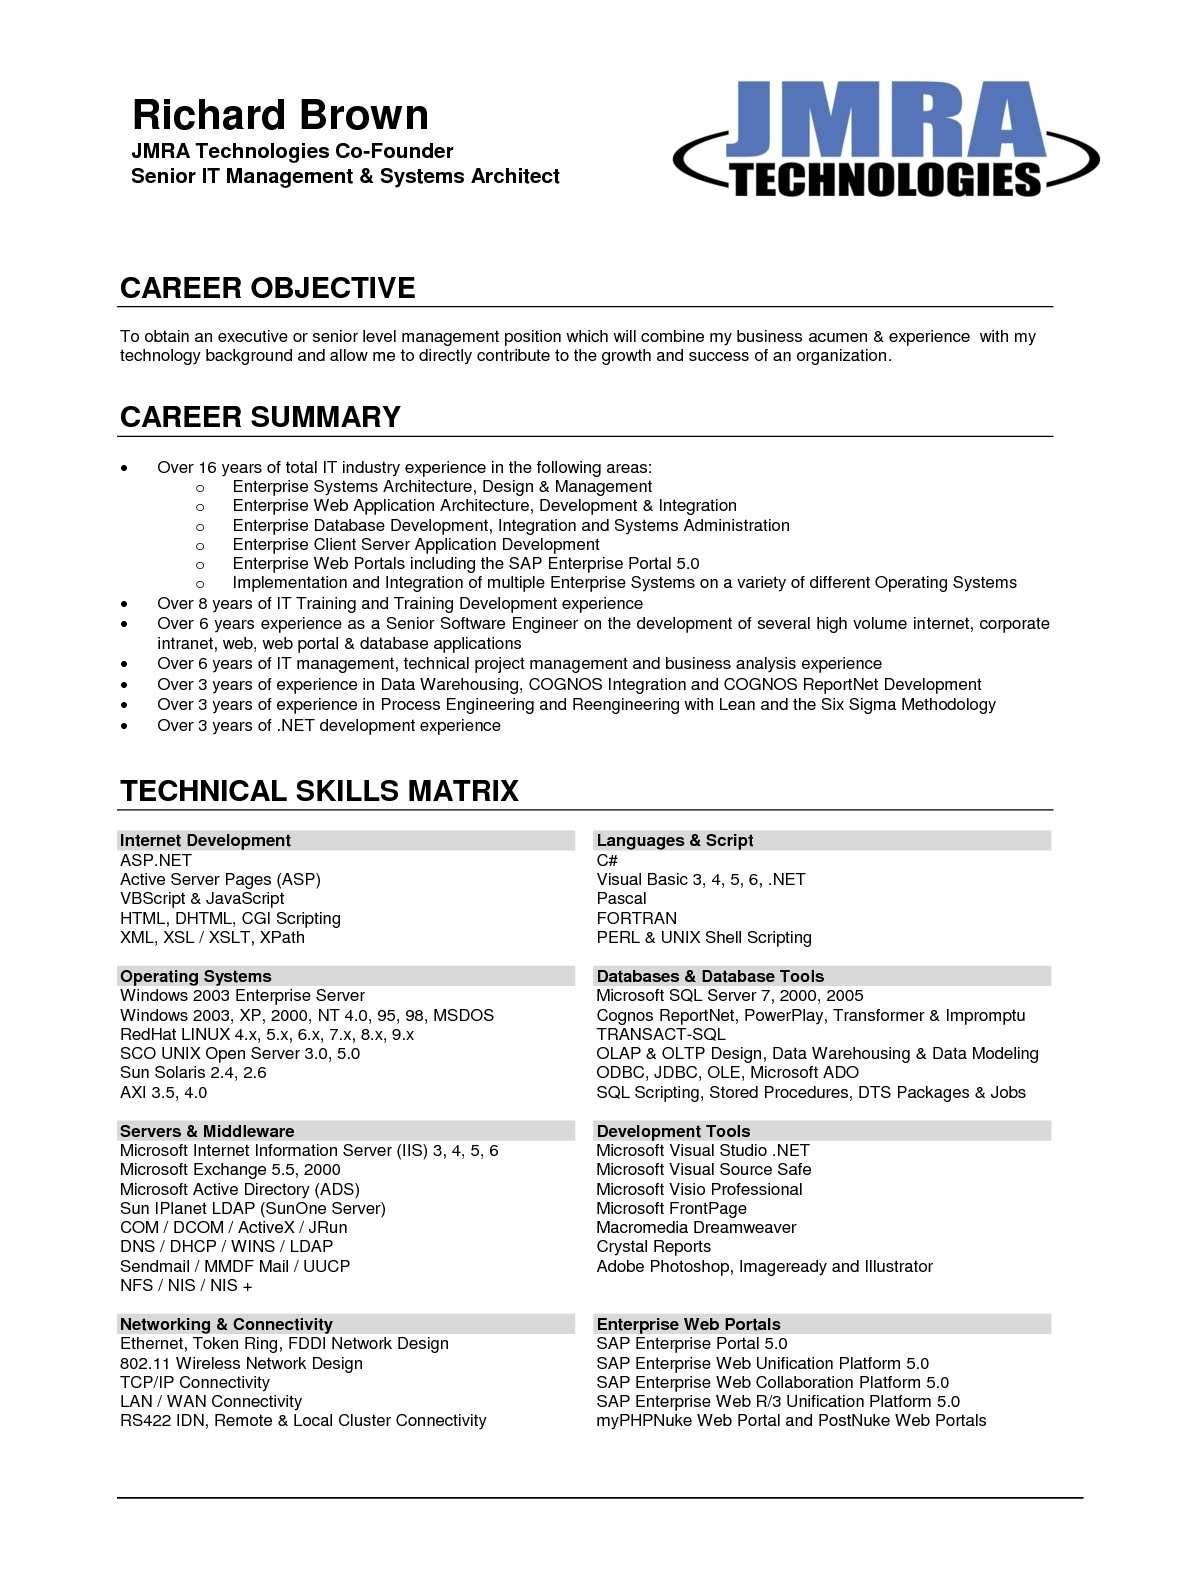 Good Objective For Resume Career Objective Resume Template Good Resume Objective Good Resume Objective good objective for resume wikiresume.com